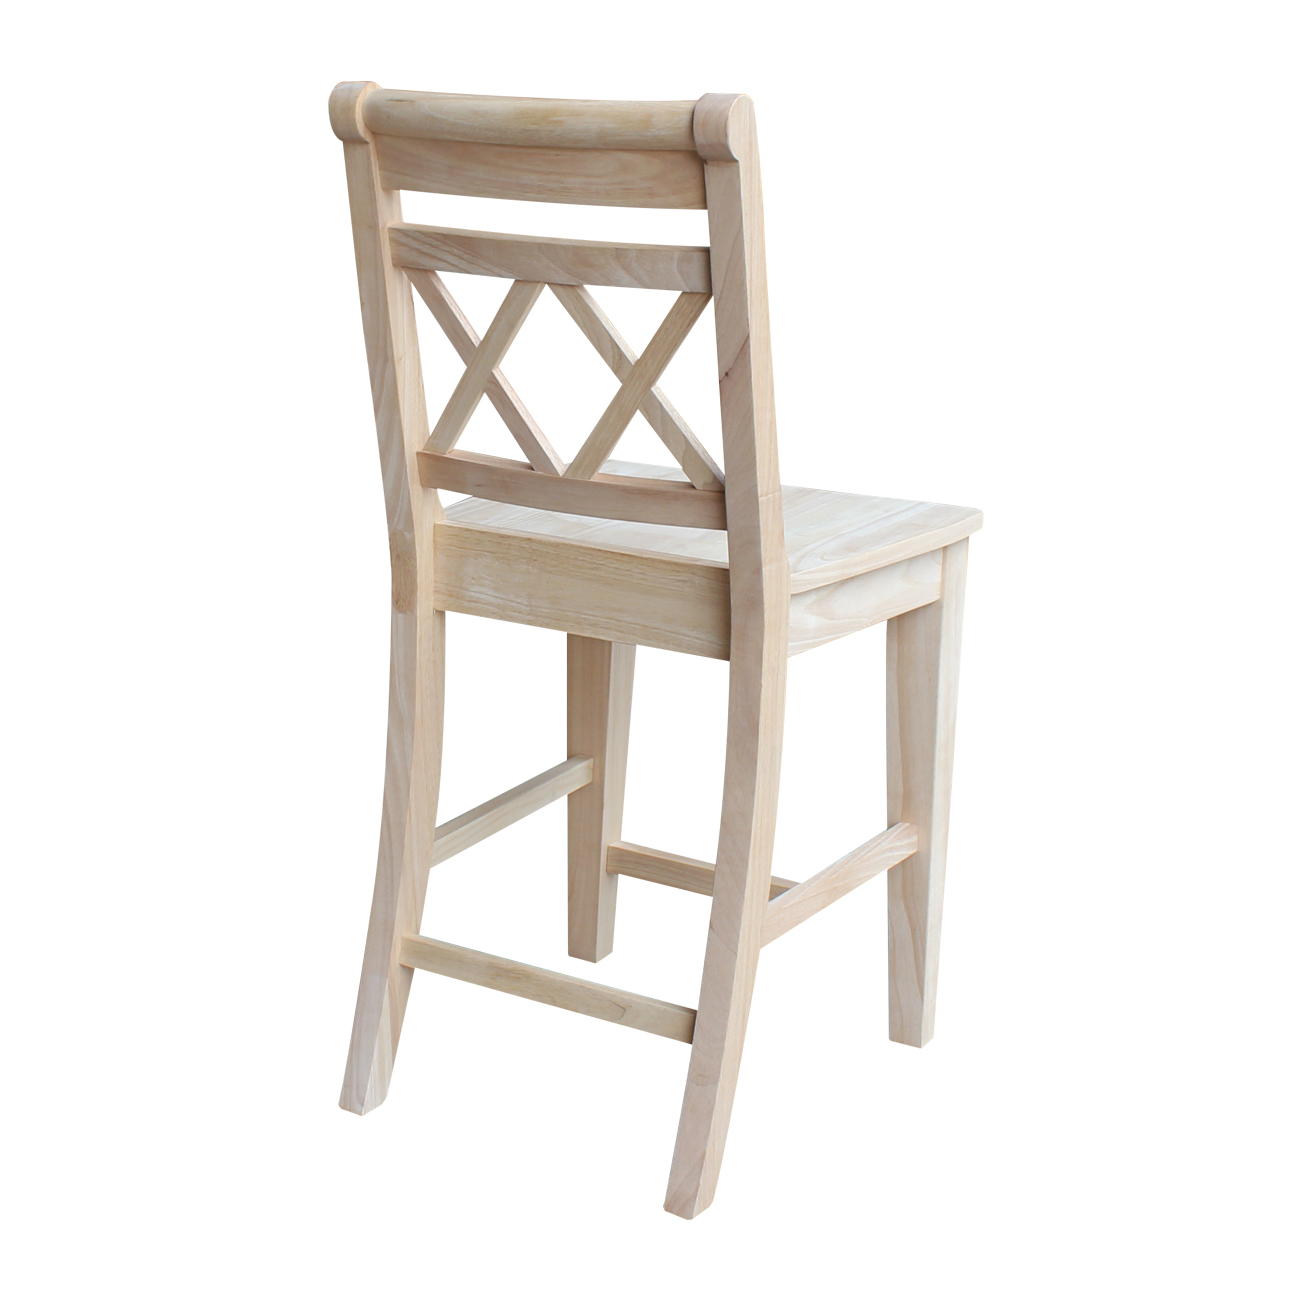 counter height chairs with back baby travel high chair canyon xx stool free shipping s 472 jpg